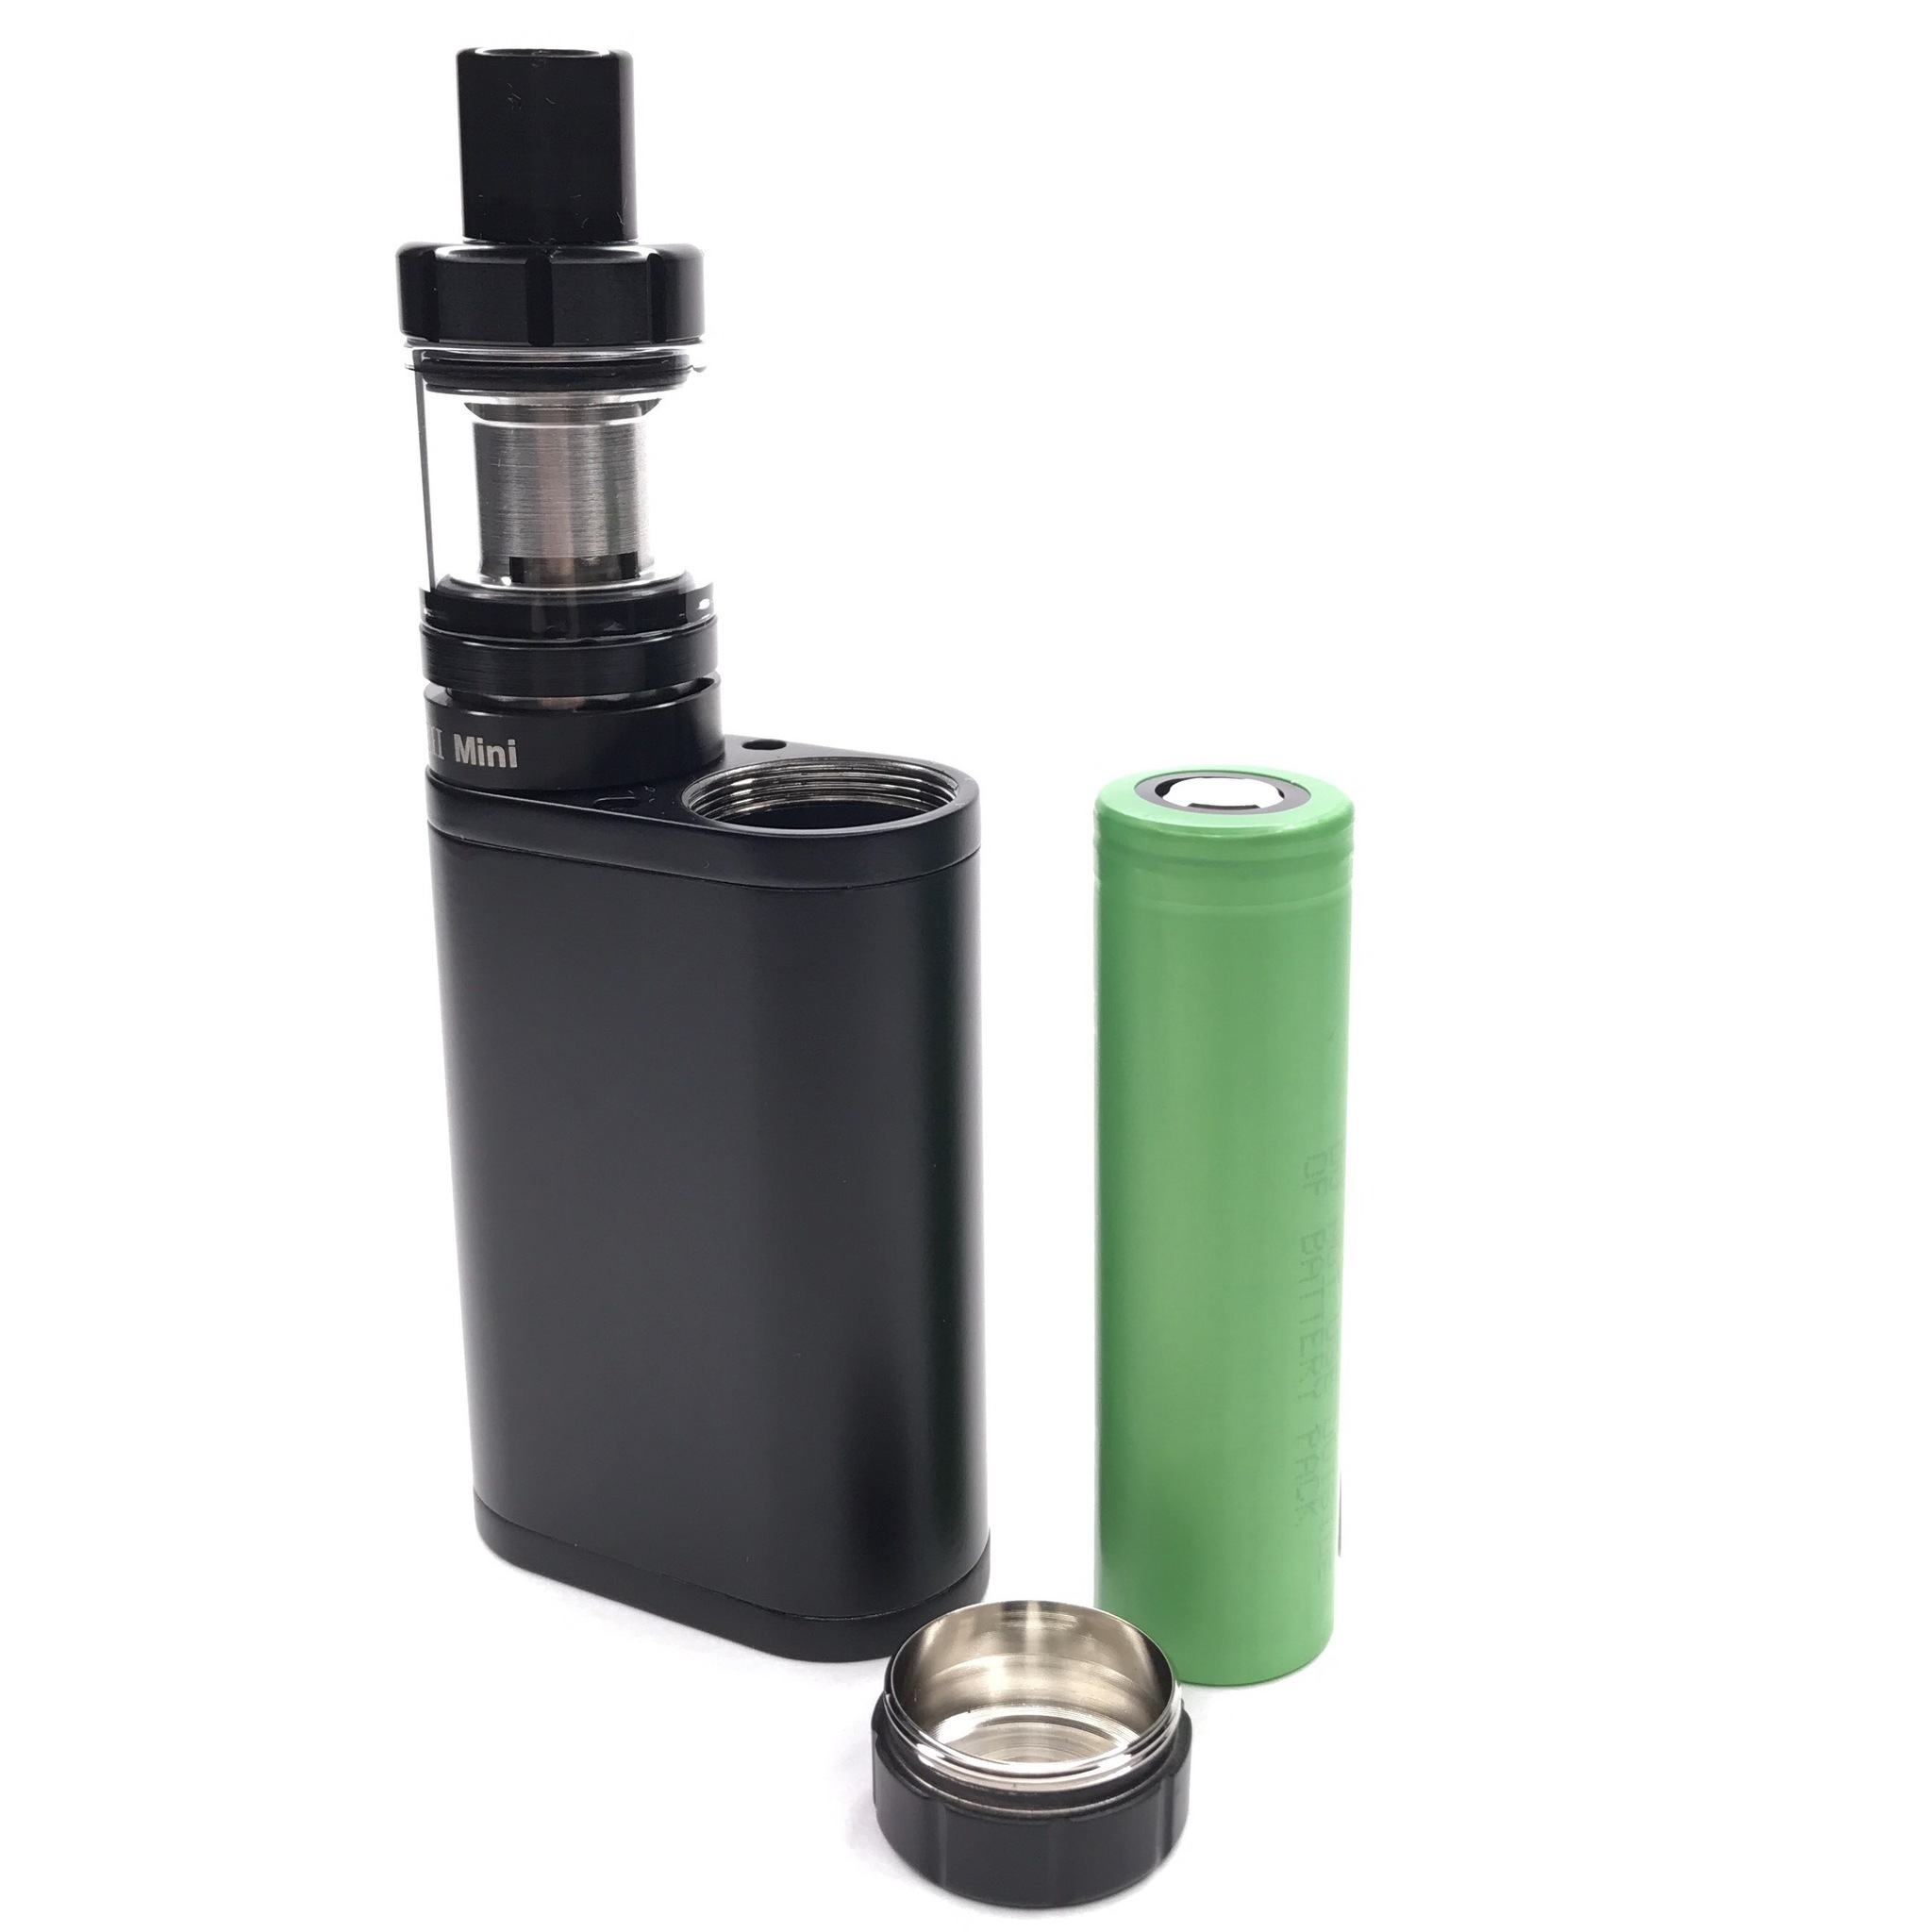 Eleaf iStick Pico Kit